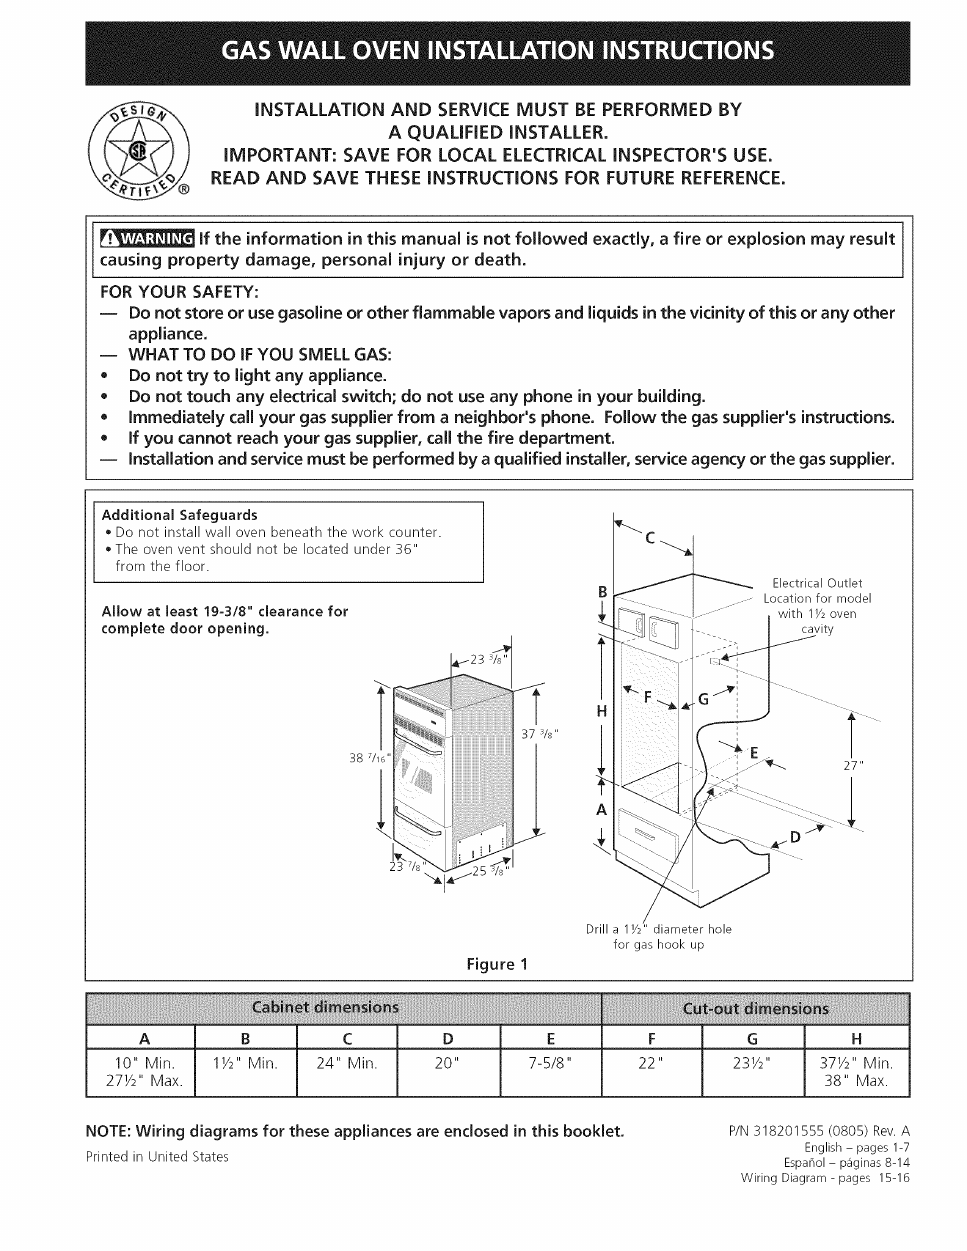 Wiring Diagram For Kenmore Wall Oven Will Be A Thing Electric Diagrams 24 Manual Clean Gas 3052 Installation Rh Manualagent Com Failure Codes Dryer